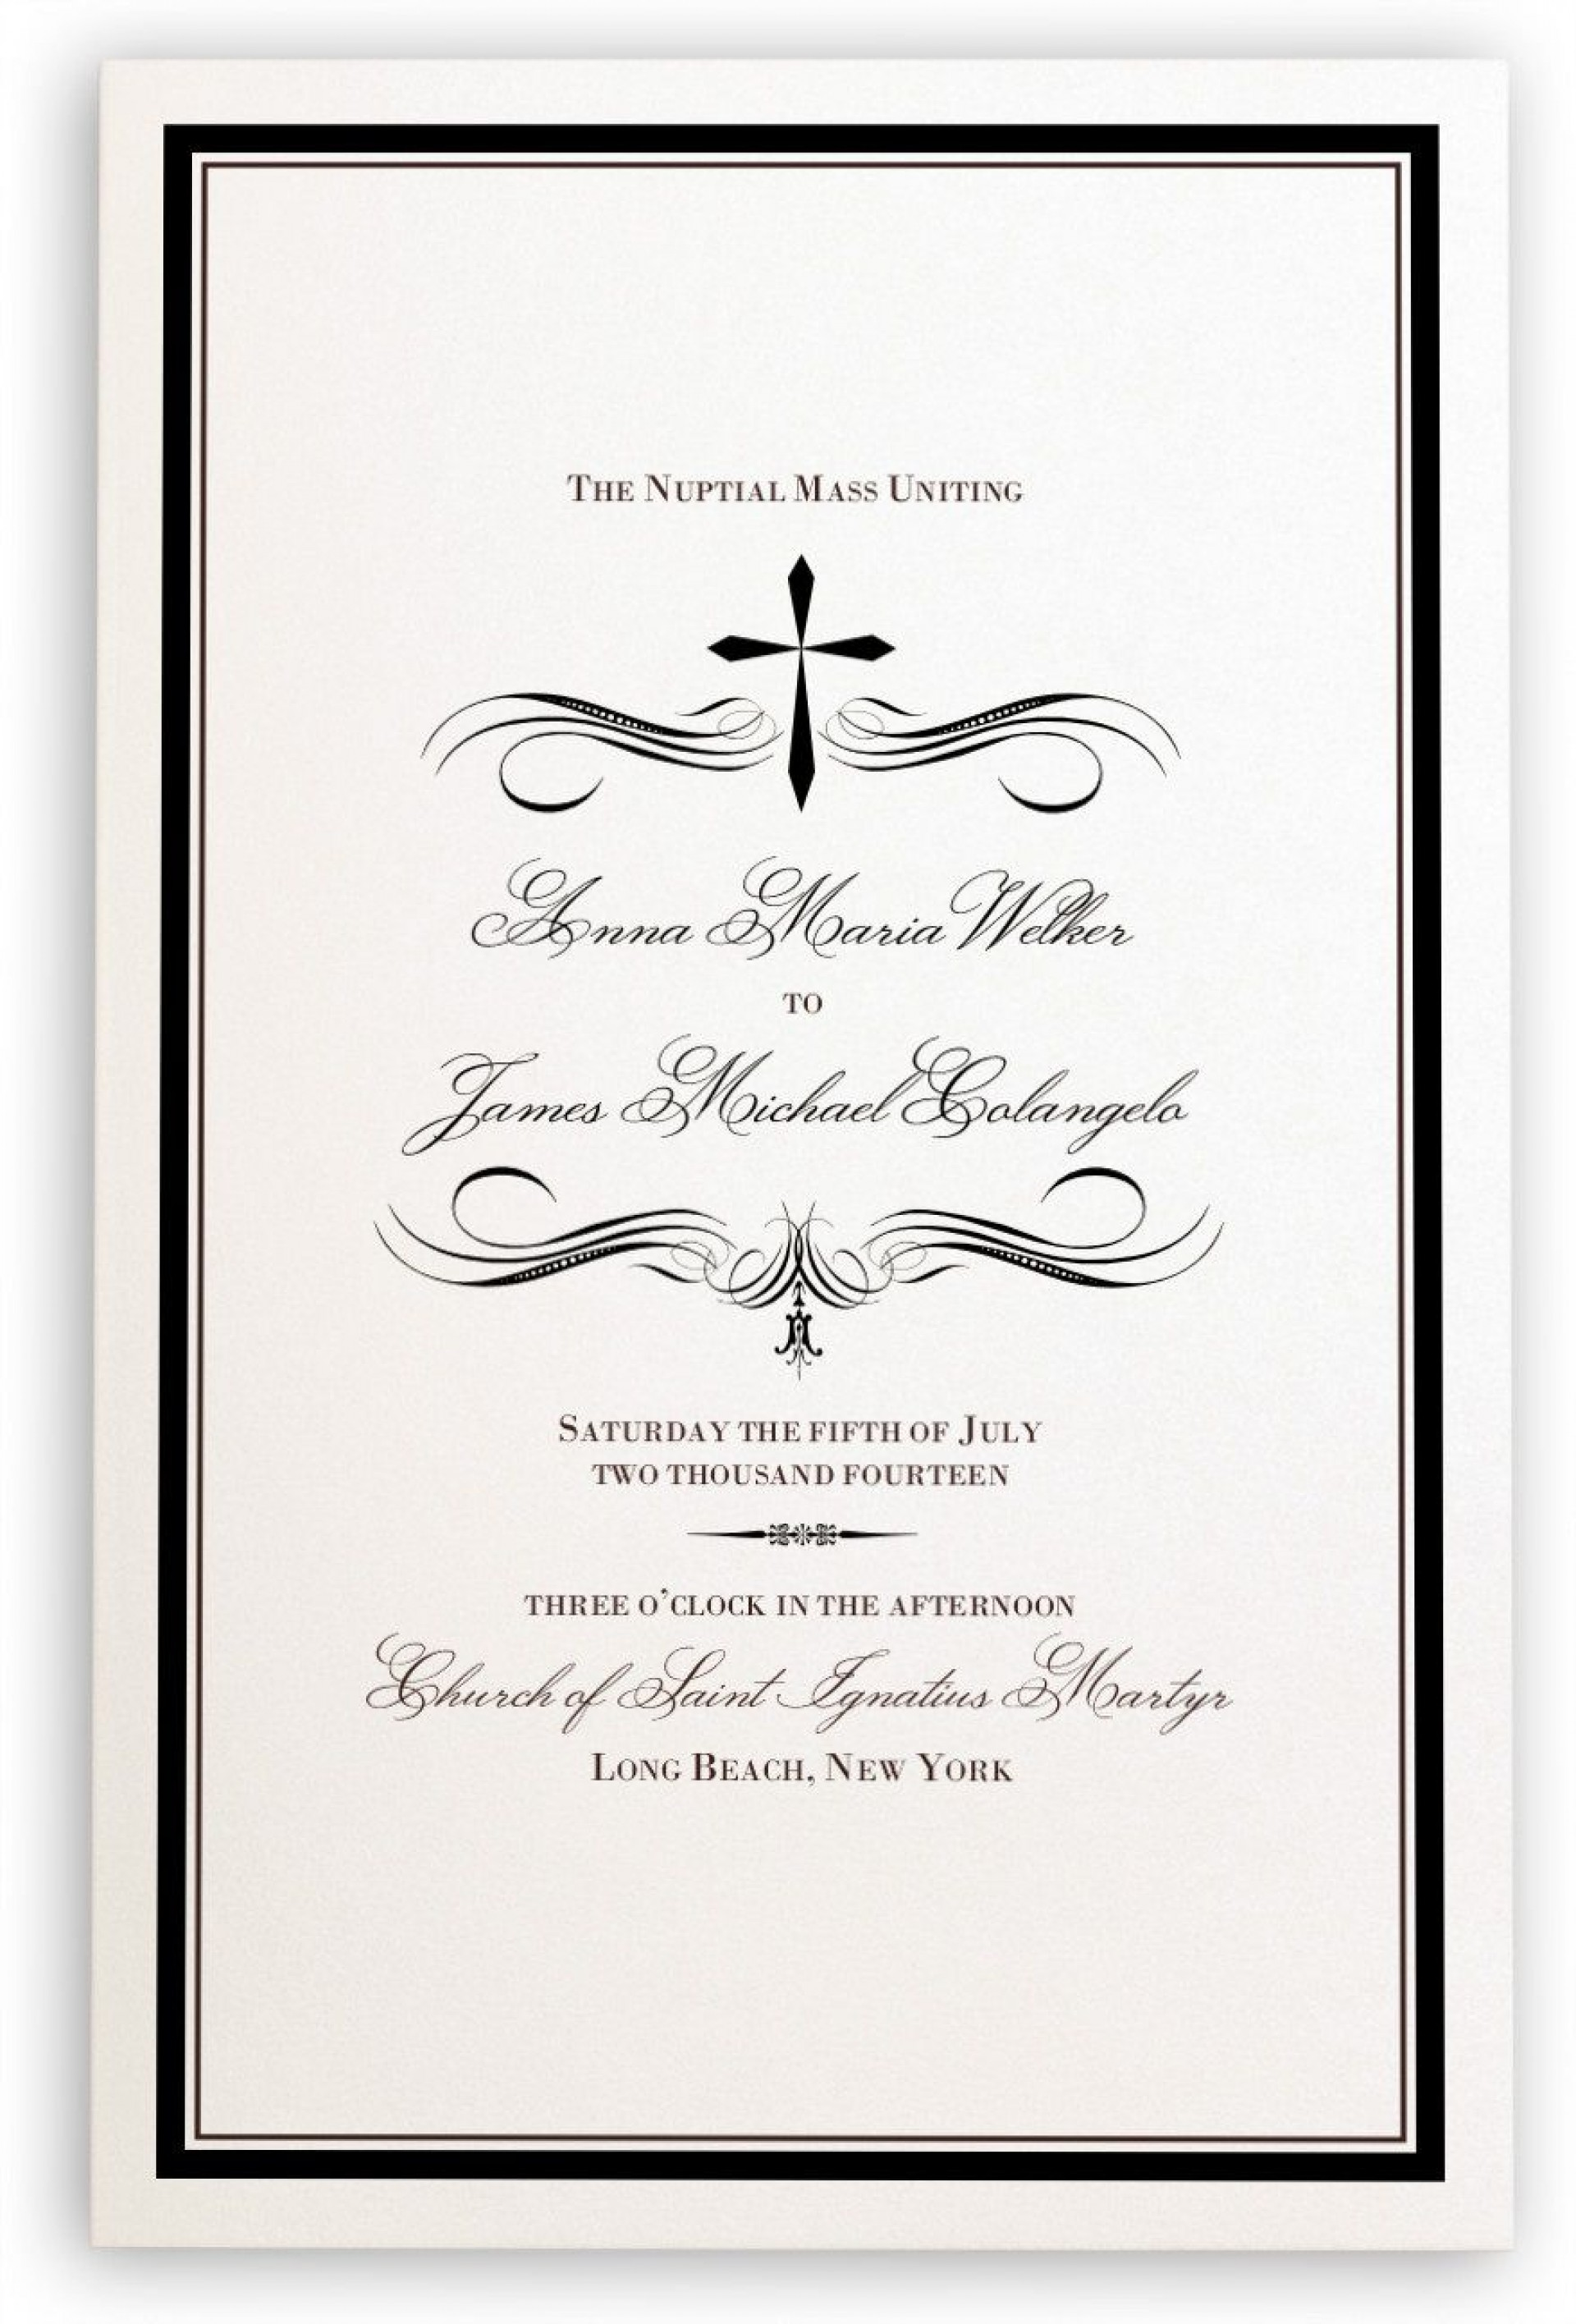 005 Simple Catholic Wedding Program Template Highest Quality  Roman Idea (with Readings)1920